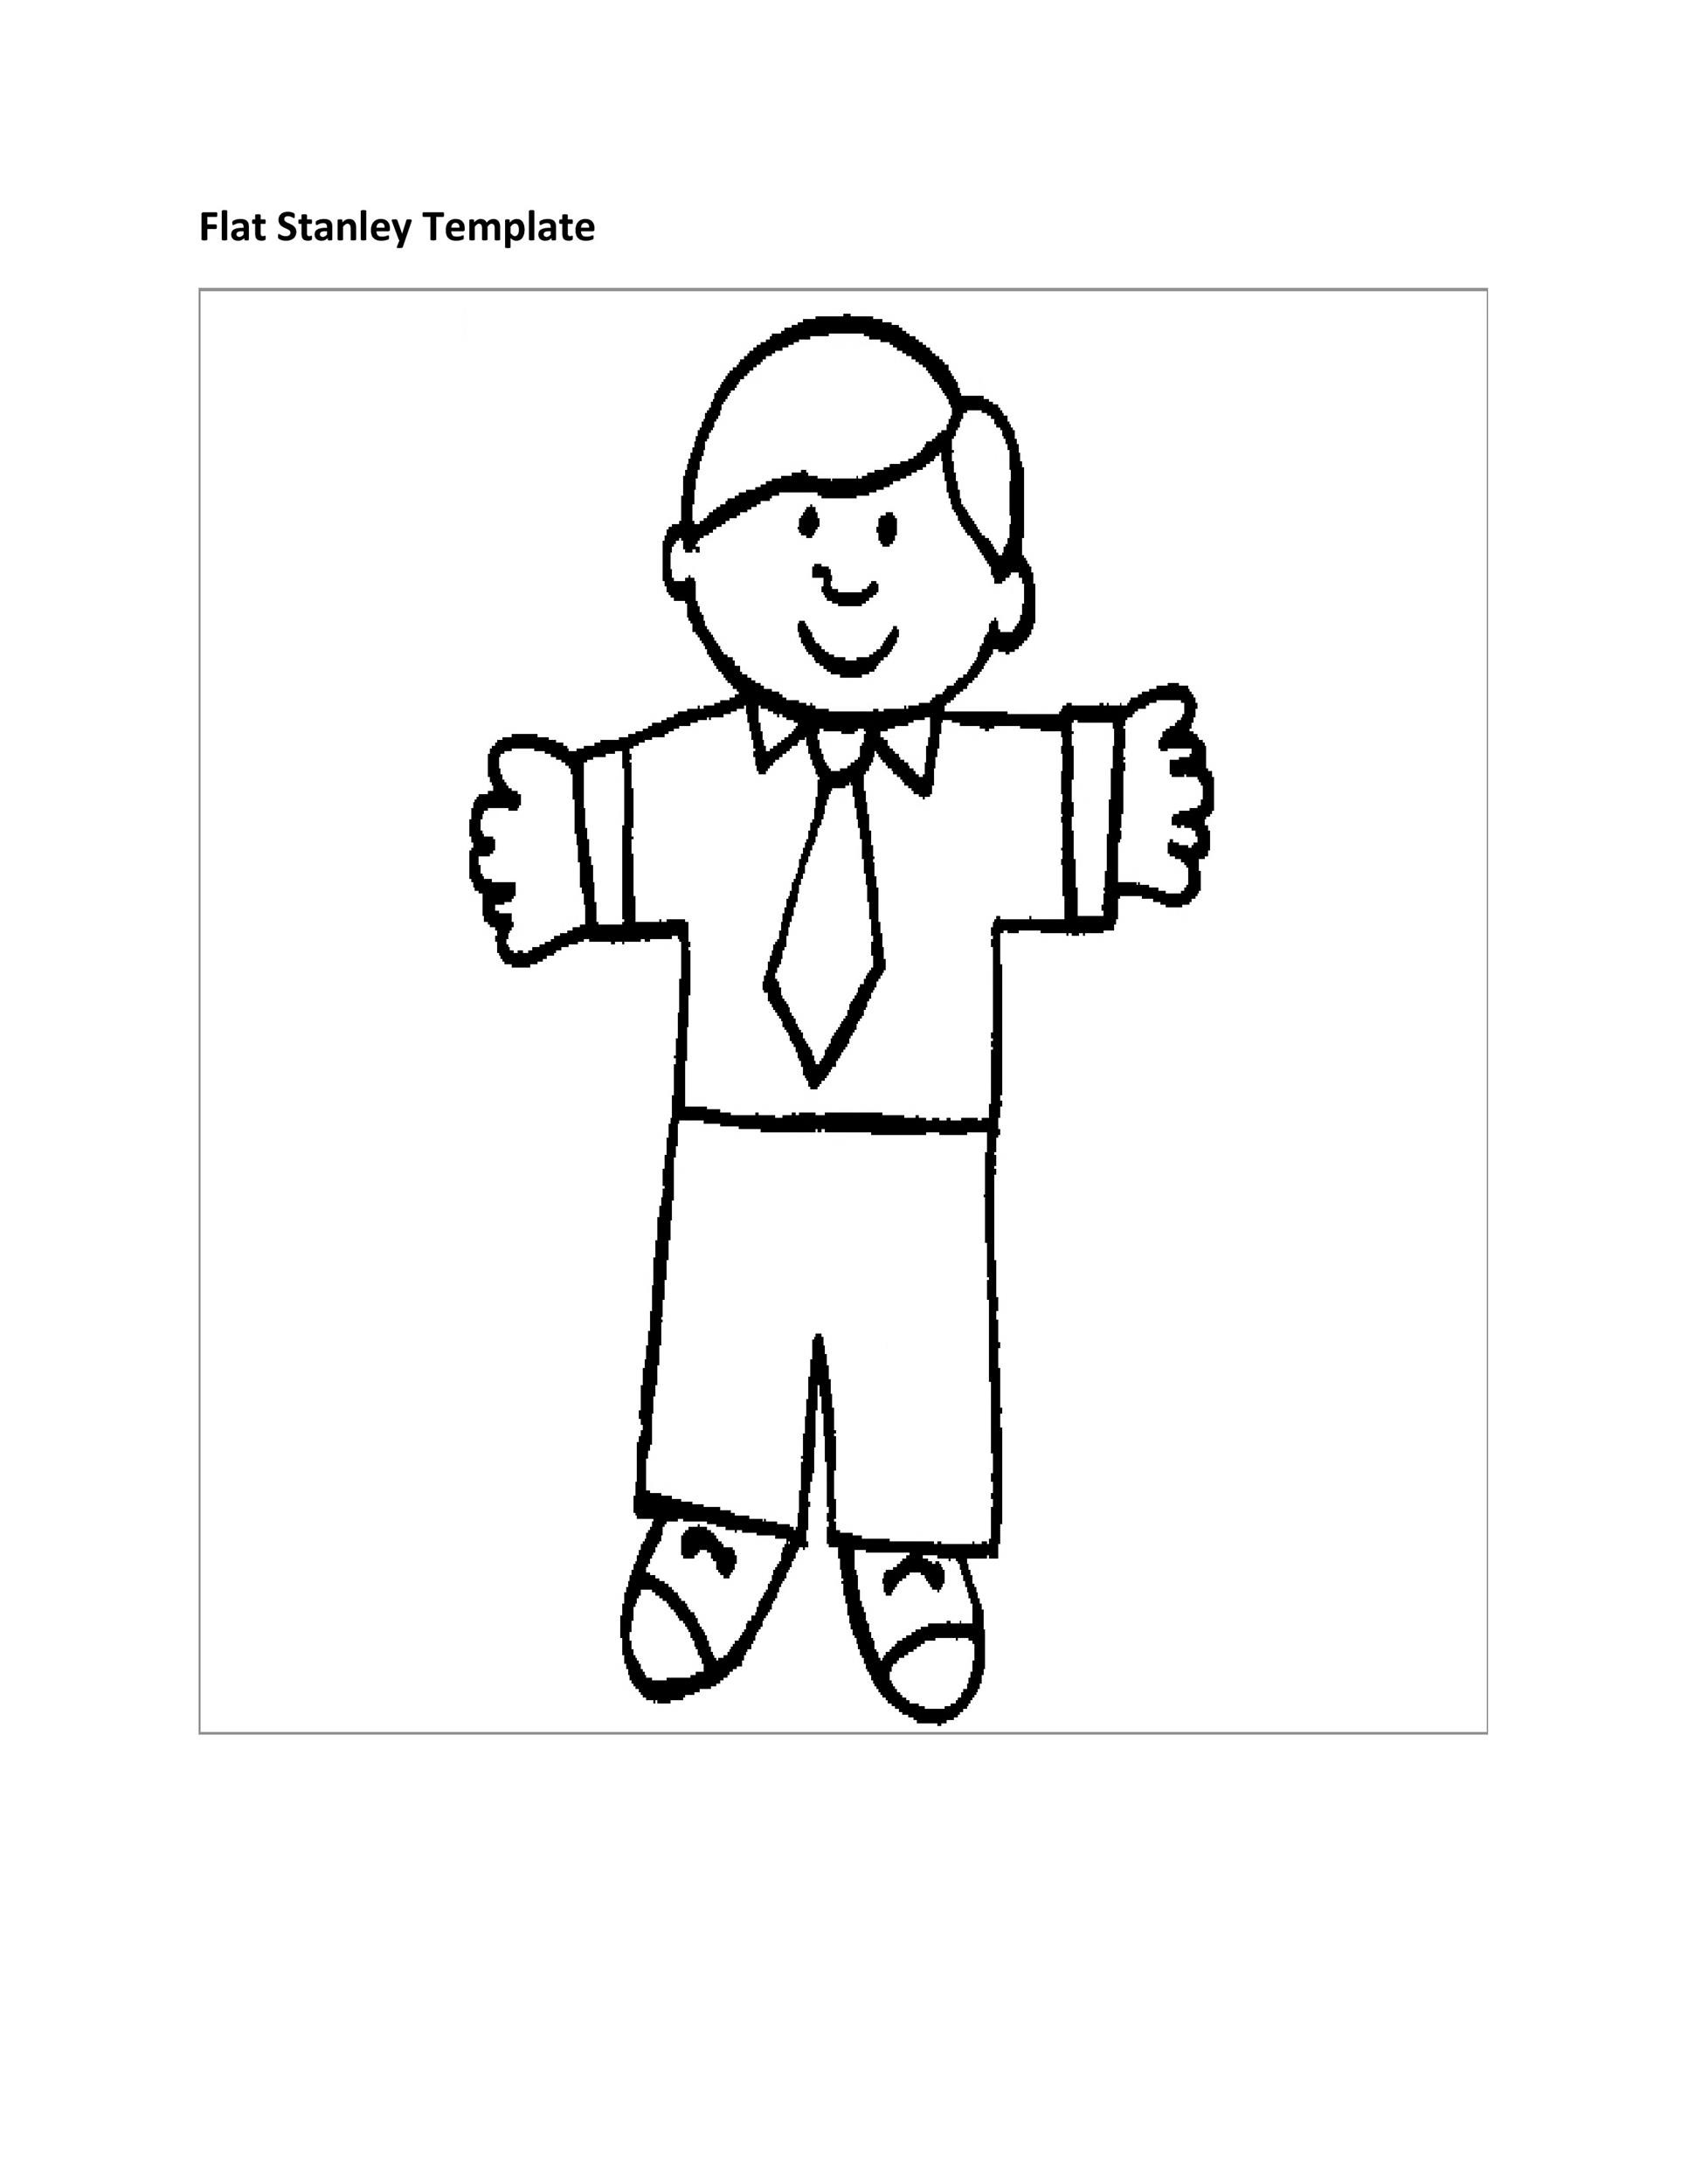 Flat Stanley Letter Examples